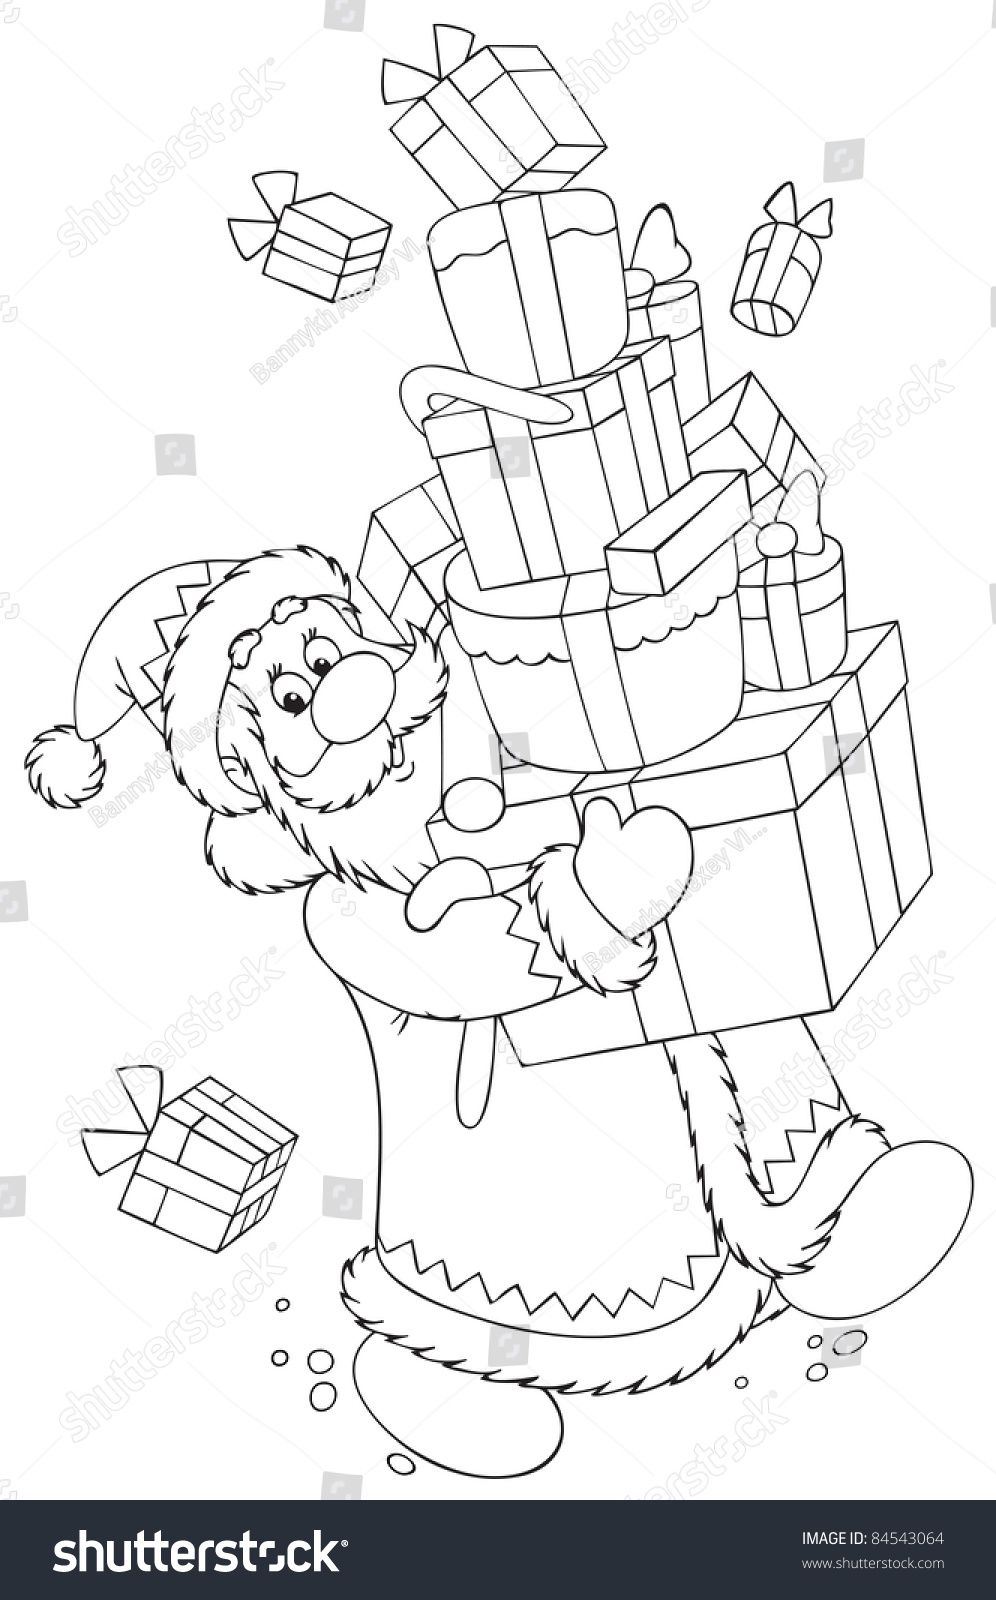 Santa Carrying A Large Stack Of Gifts Ad Affiliate Carrying Santa Large Gifts Christmas Coloring Sheets Santa Coloring Pages Disney Cross Stitch Patterns